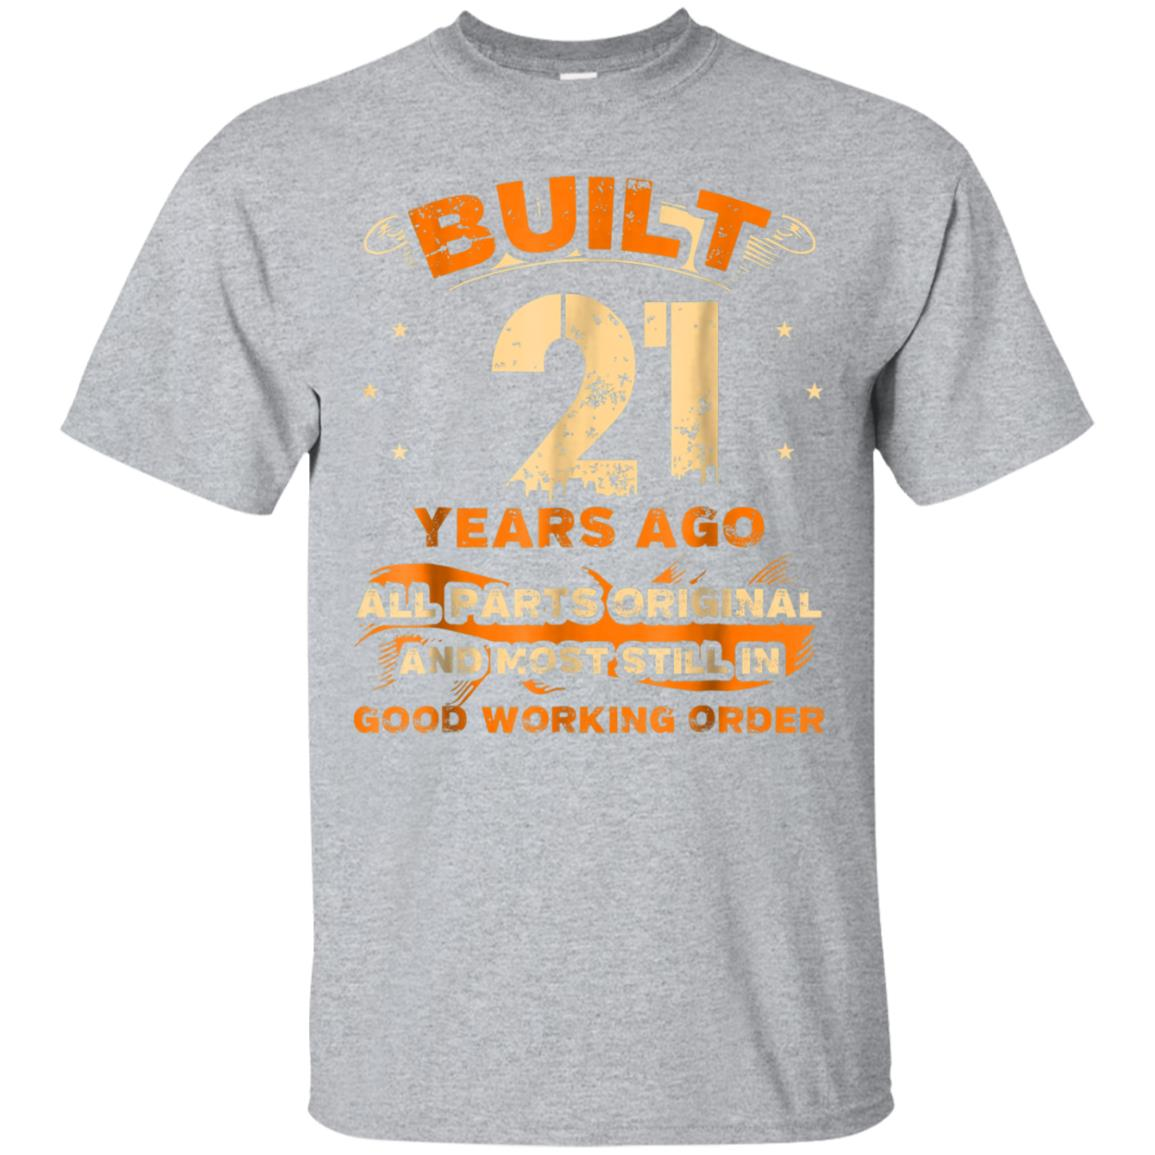 Built 21 Years Ago Original Parts Shirt 21st Birthday Gift 99promocode